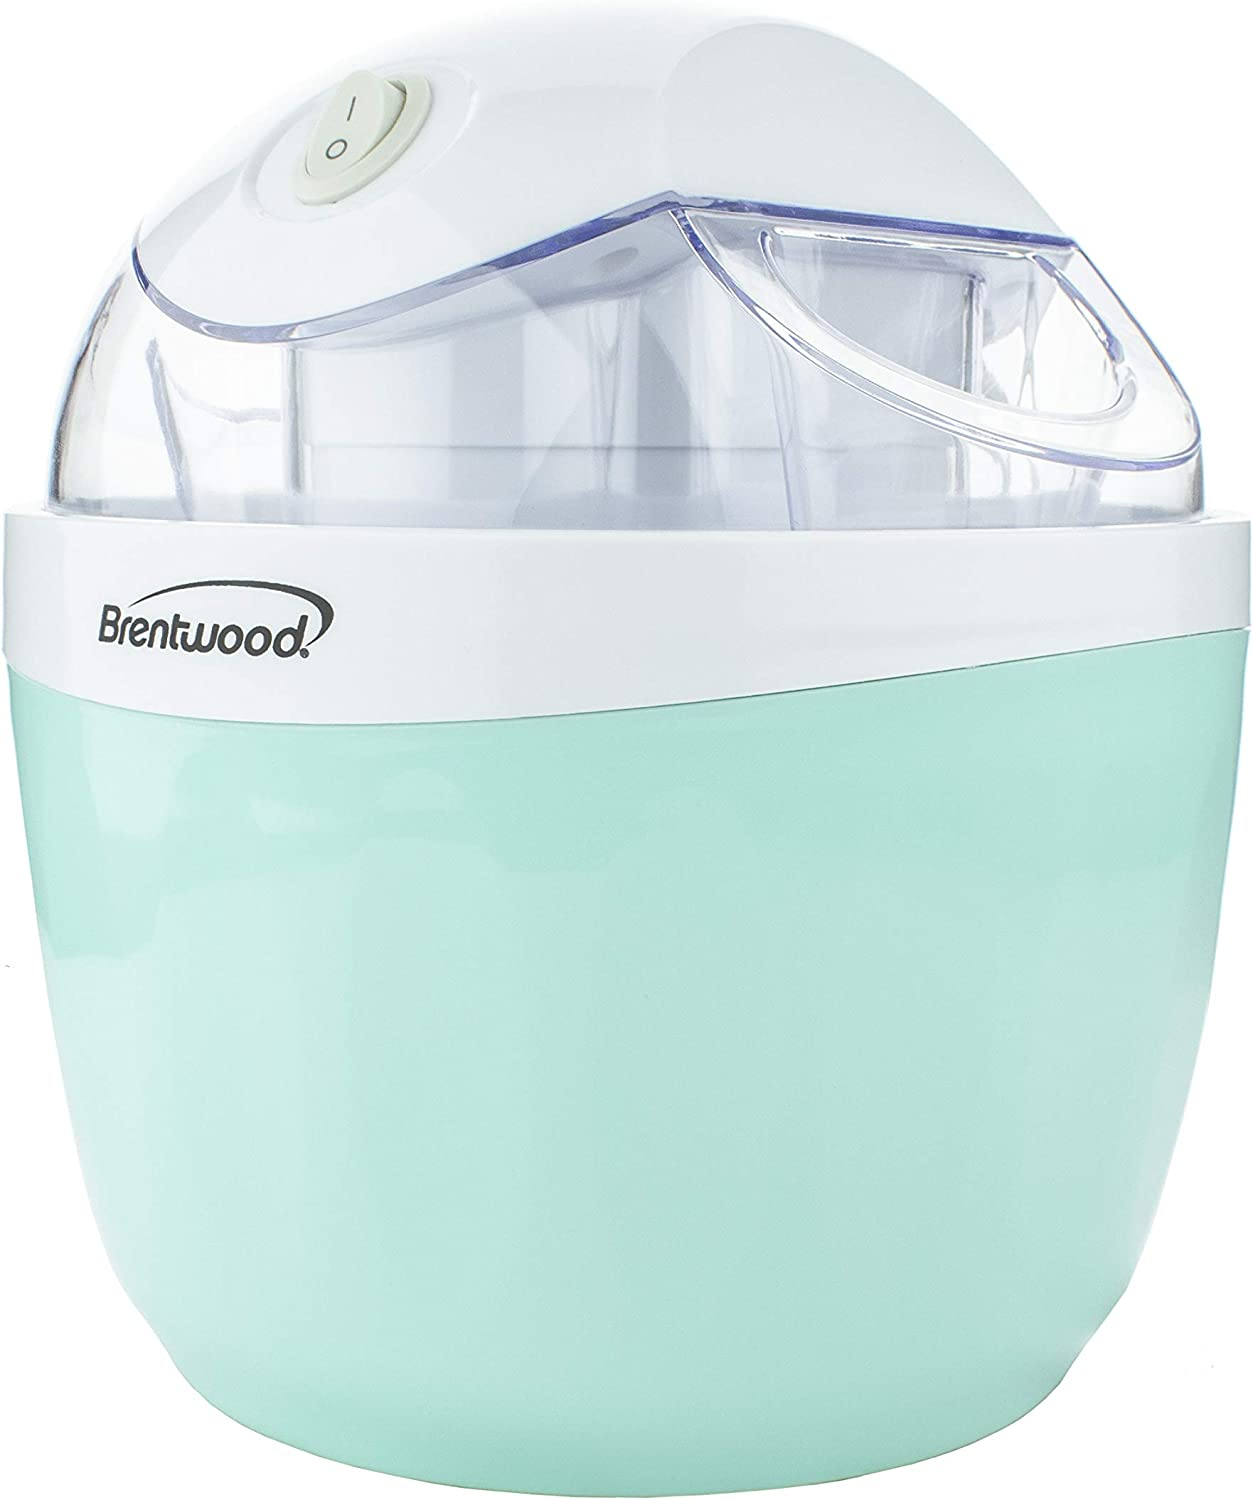 Brentwood TS-1410BL 1 Quart Ice Cream and Sorbet Maker, Frozen Yogurt, Gelato, and Custard Machine, Blue